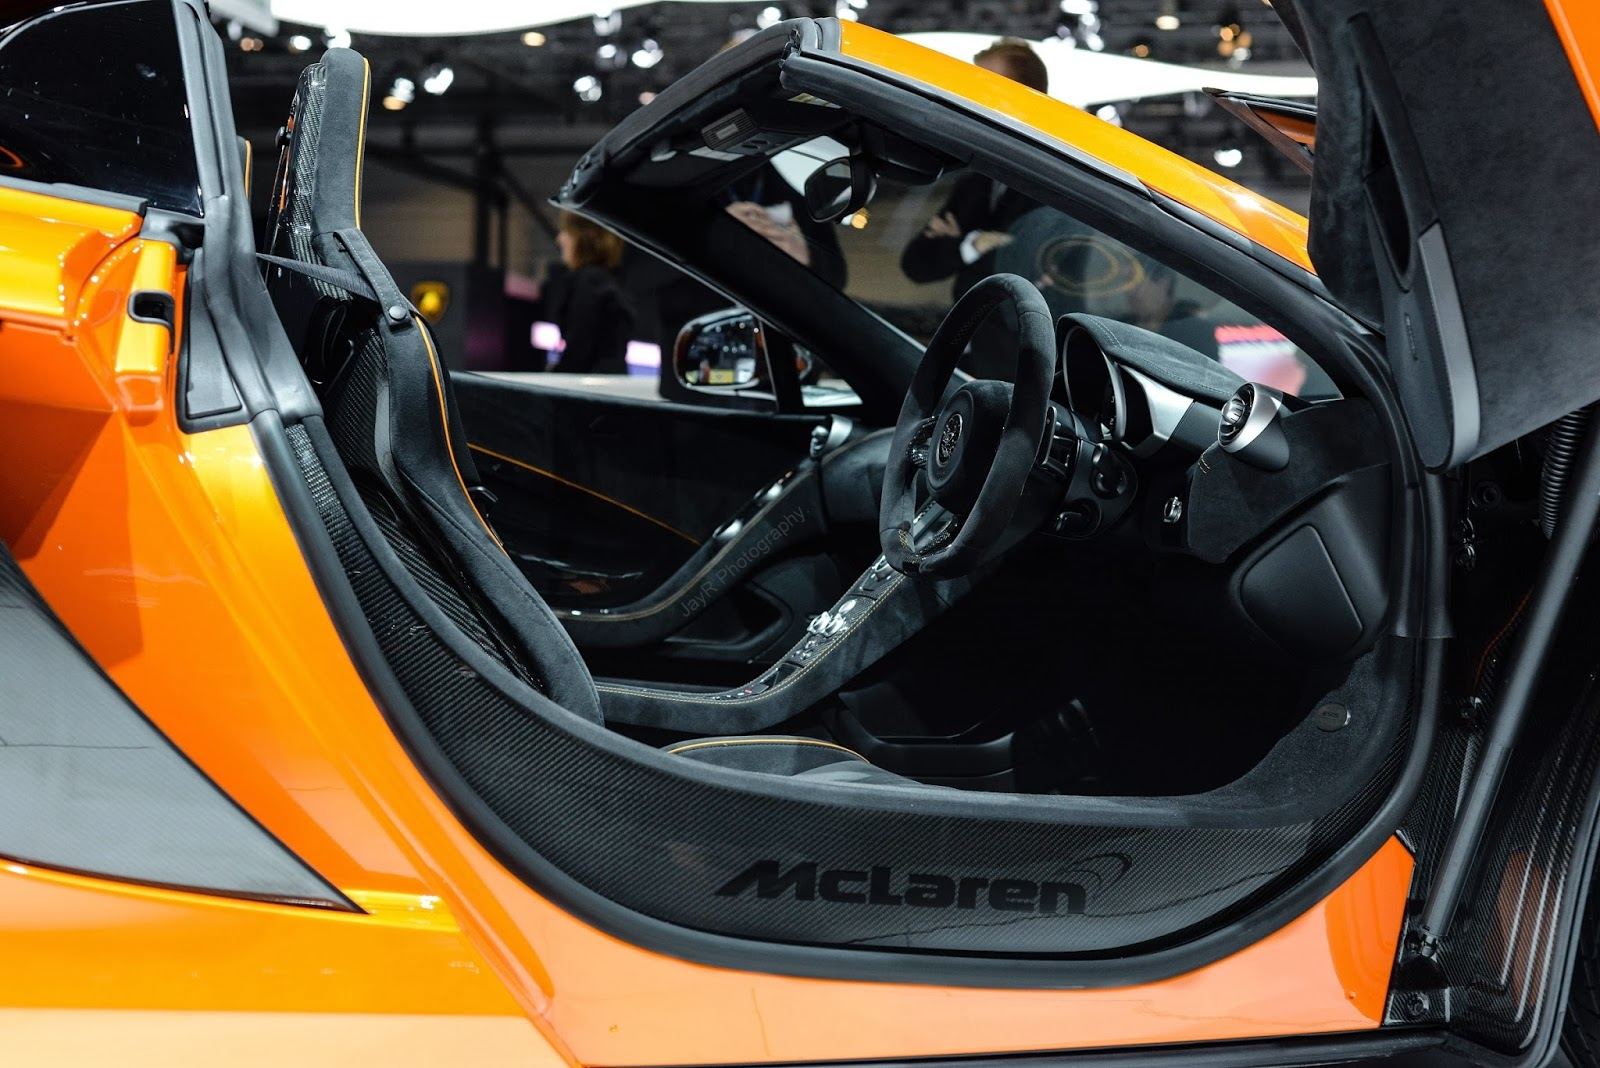 McLaren Claims Luxury Is Big On The 650S.